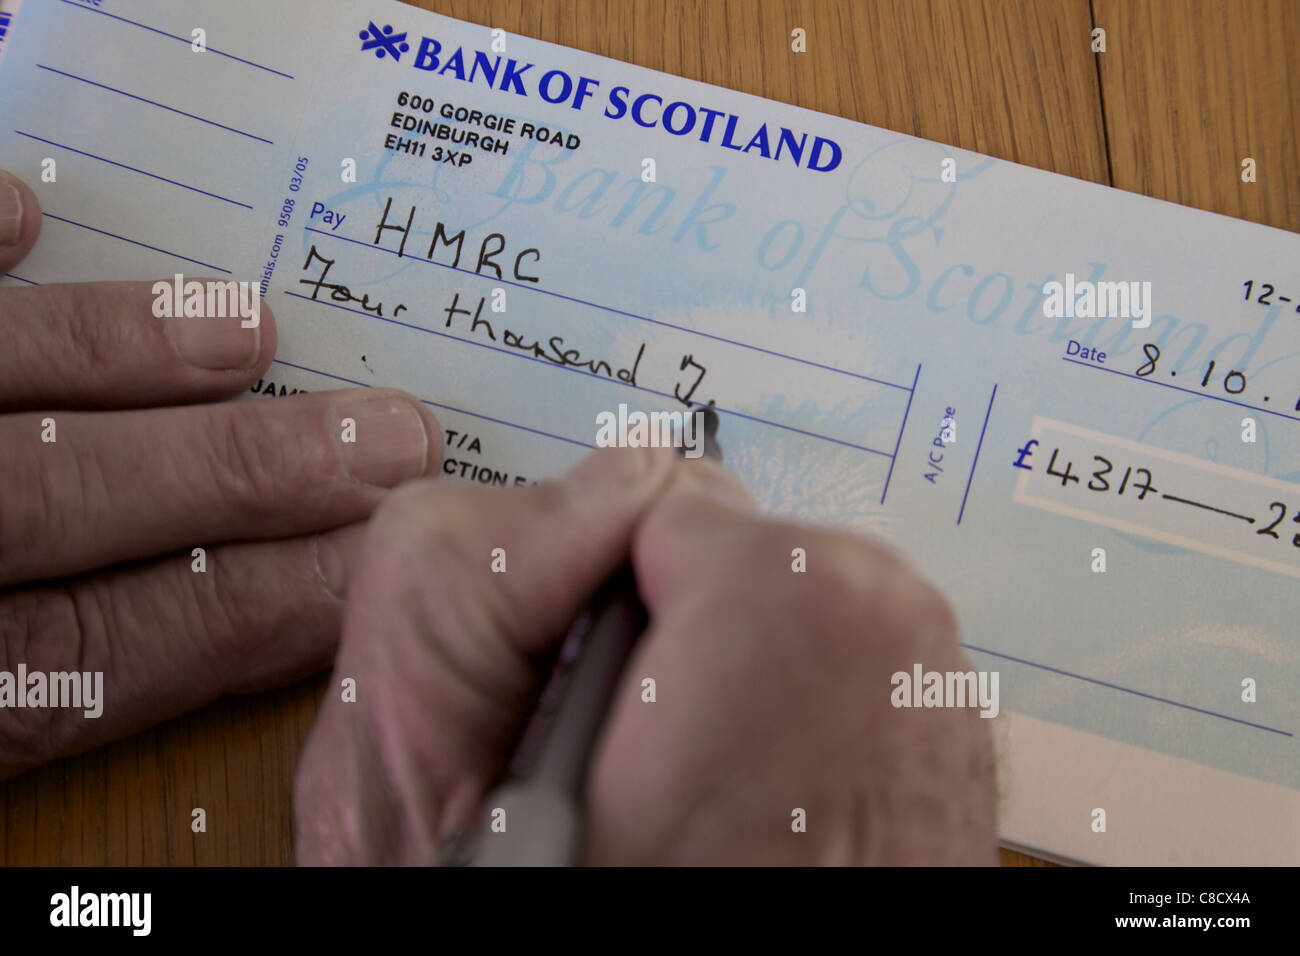 Old cheque stock photos old cheque stock images alamy writing a cheque for hmrc tax england stock image ccuart Images